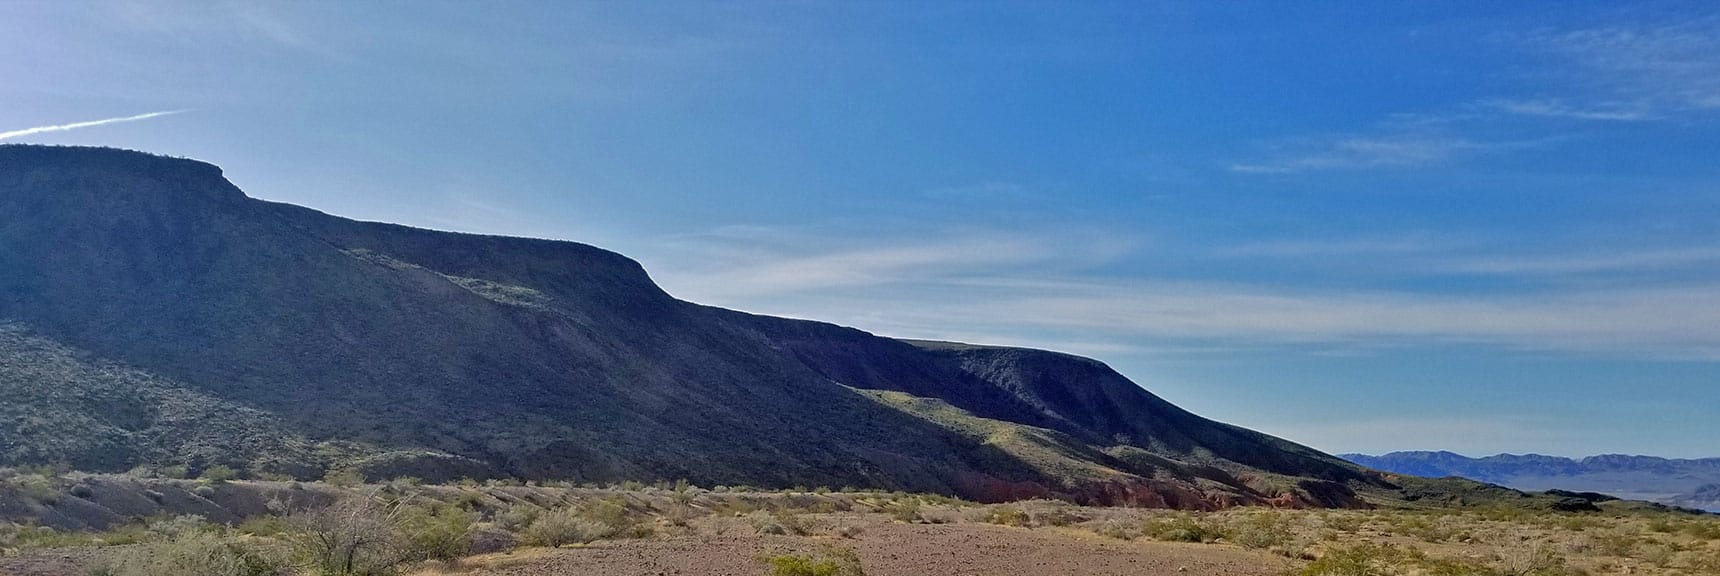 Southern Portion of Black Mesa in Lake Mead National Recreation Area, Nevada